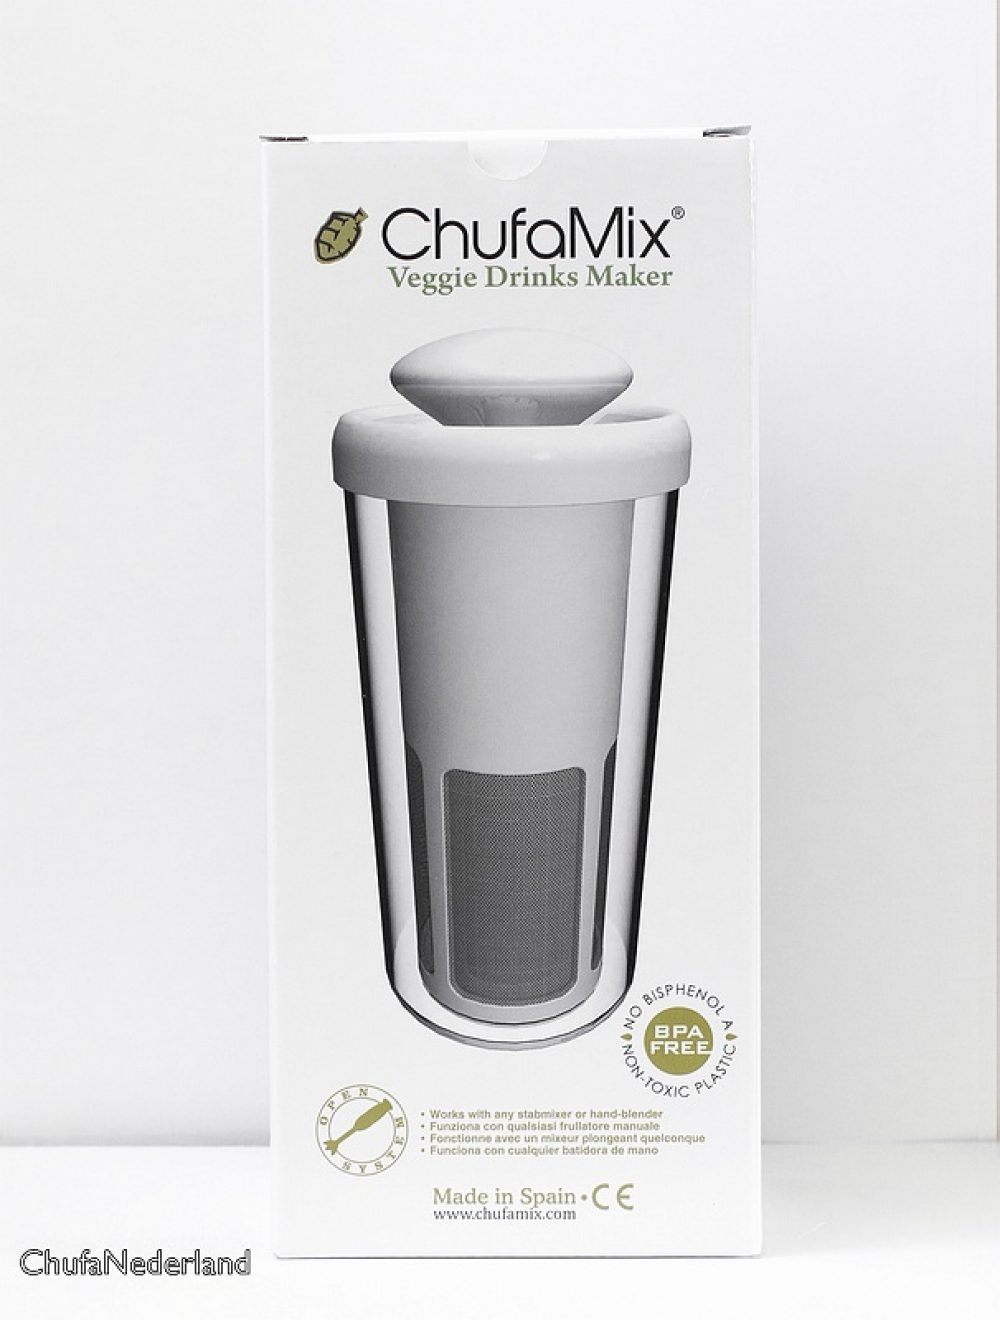 ChufaMix / Vegan Milker / Veggie Drinks Maker